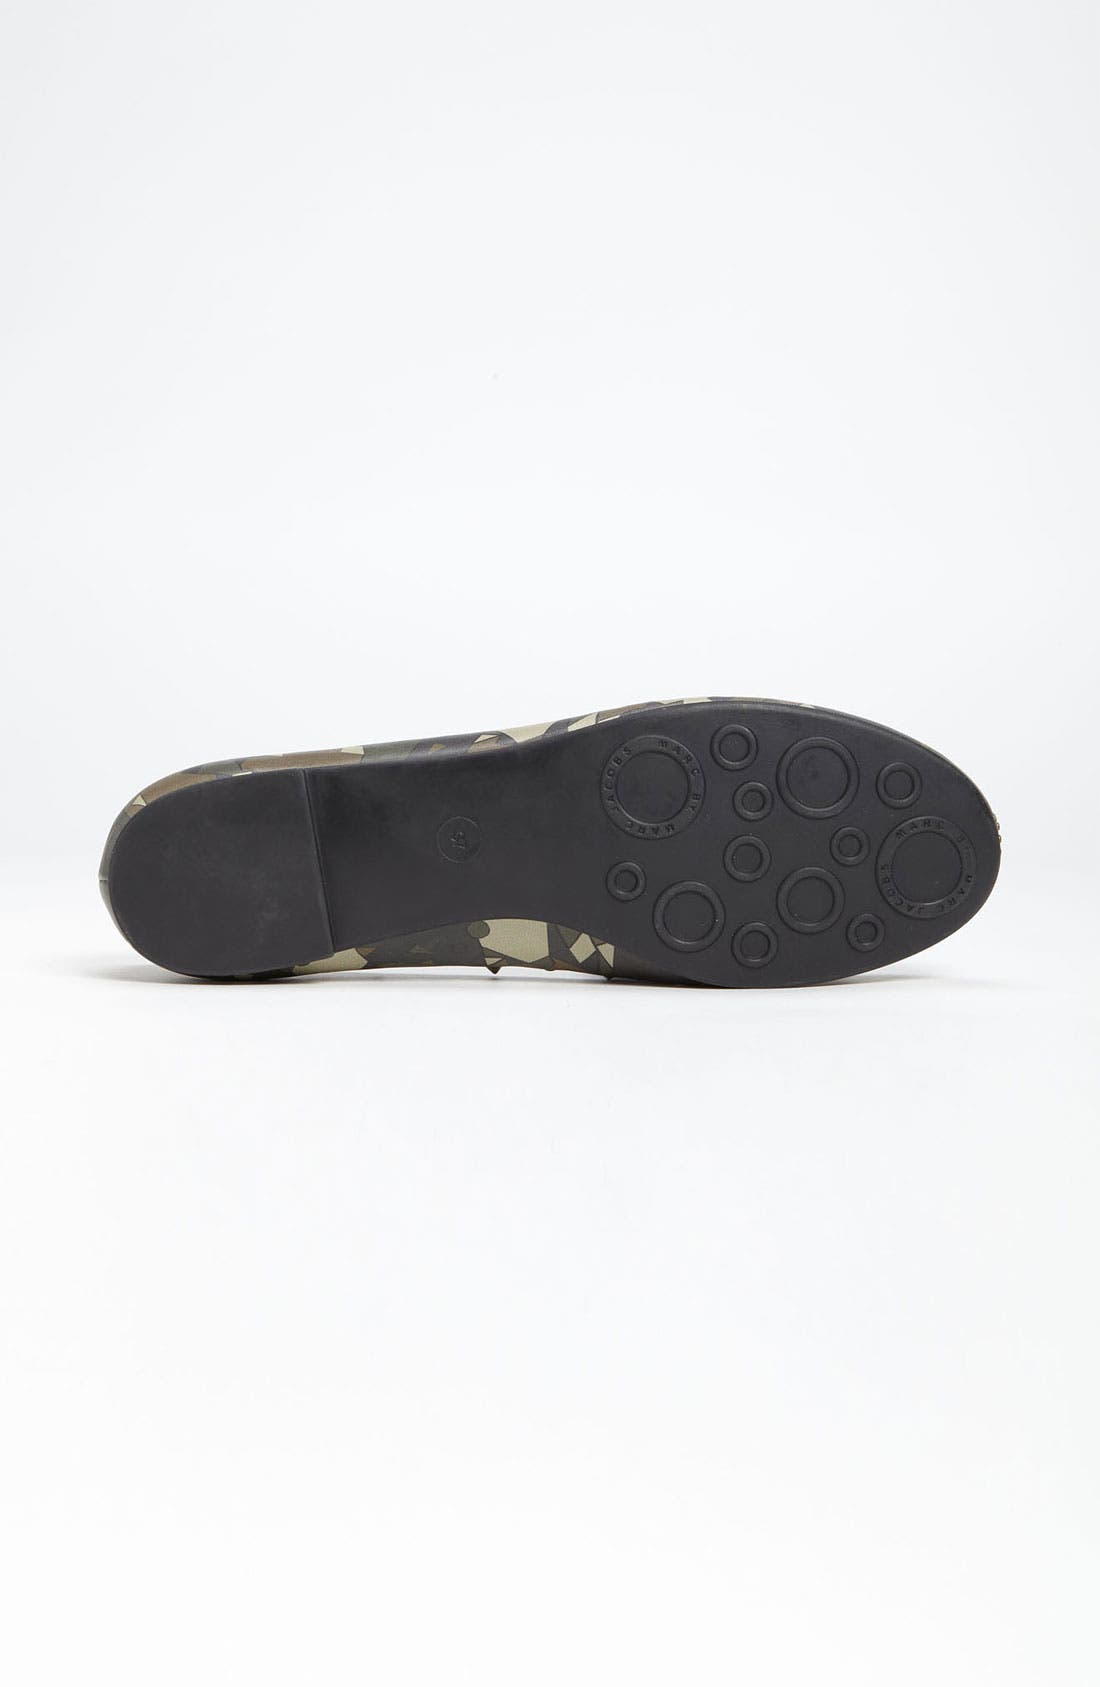 MARC BY MARC JACOBS 'Mouse' Ballerina Flat,                             Alternate thumbnail 3, color,                             357